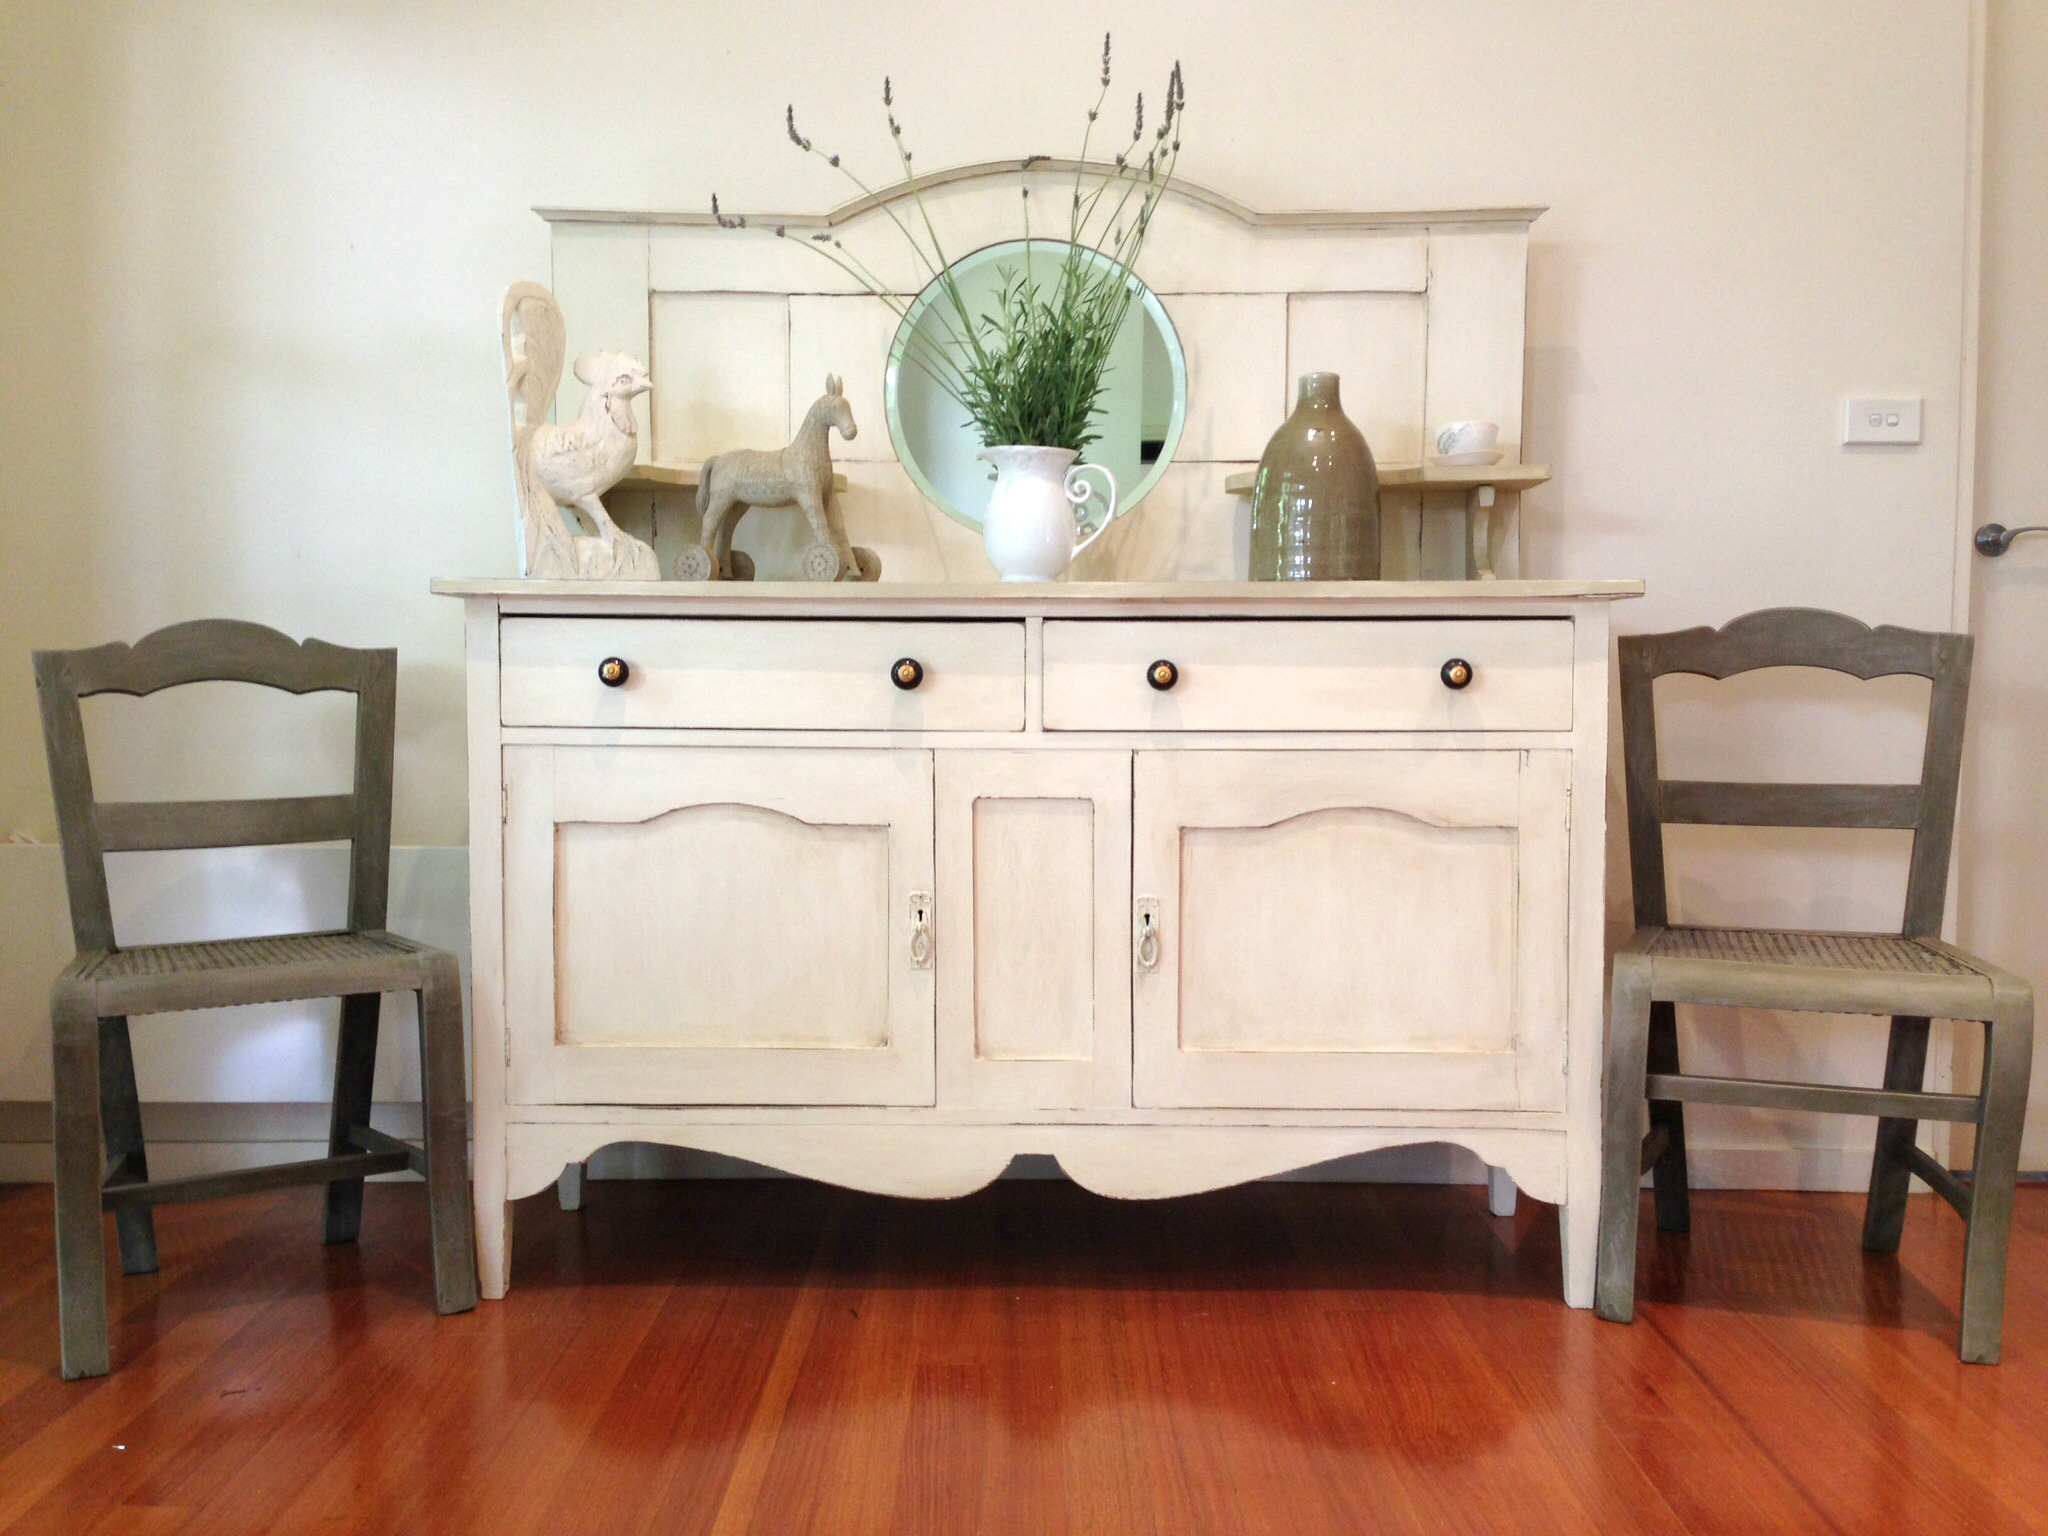 Antique sideboard makeover in Chalk Paint - by Rusty Blue Refashioned Furniture